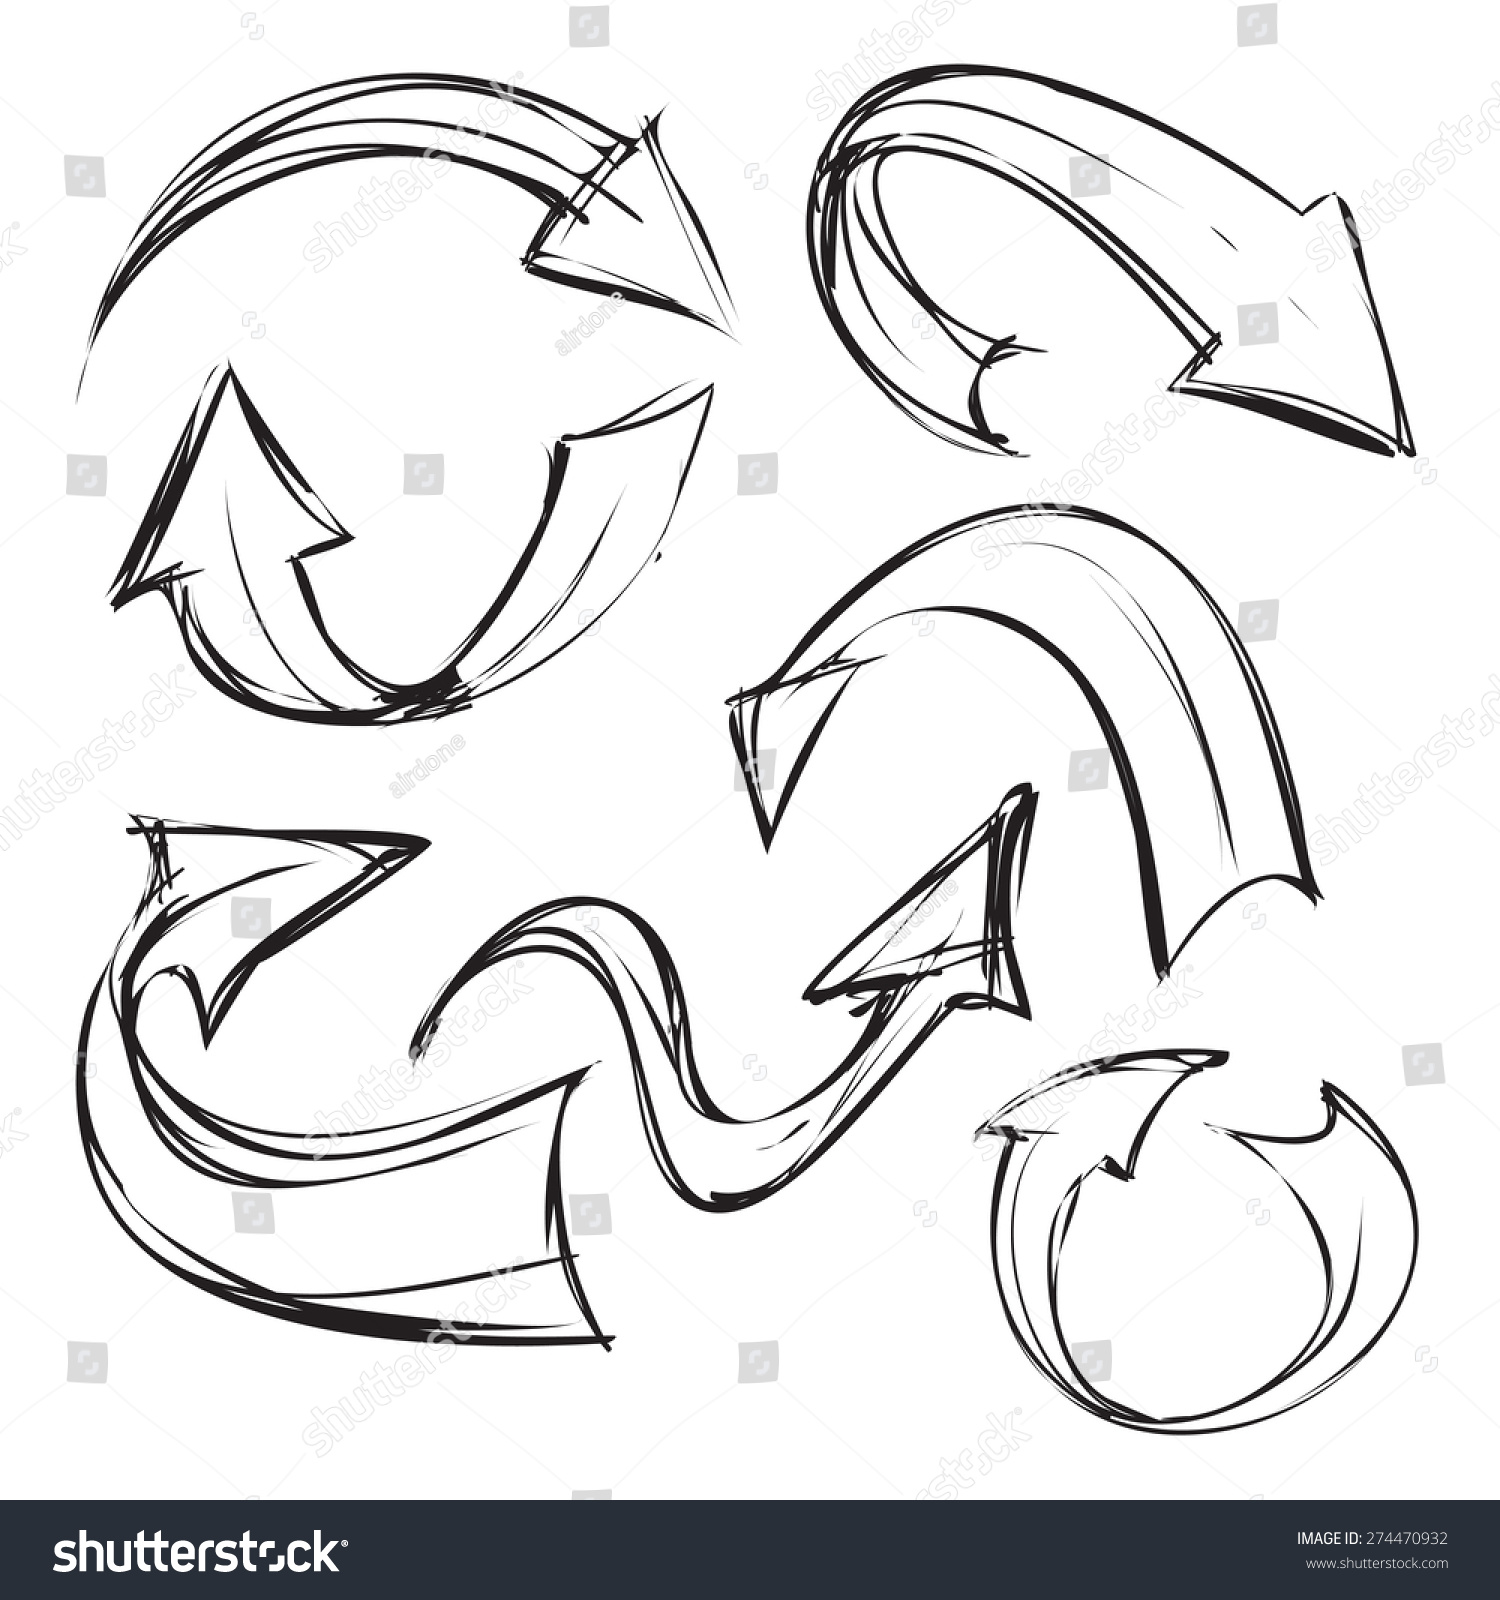 Vector Illustration Curved Arrows Simple Sketch Stock Vector 274470932 - Shutterstock